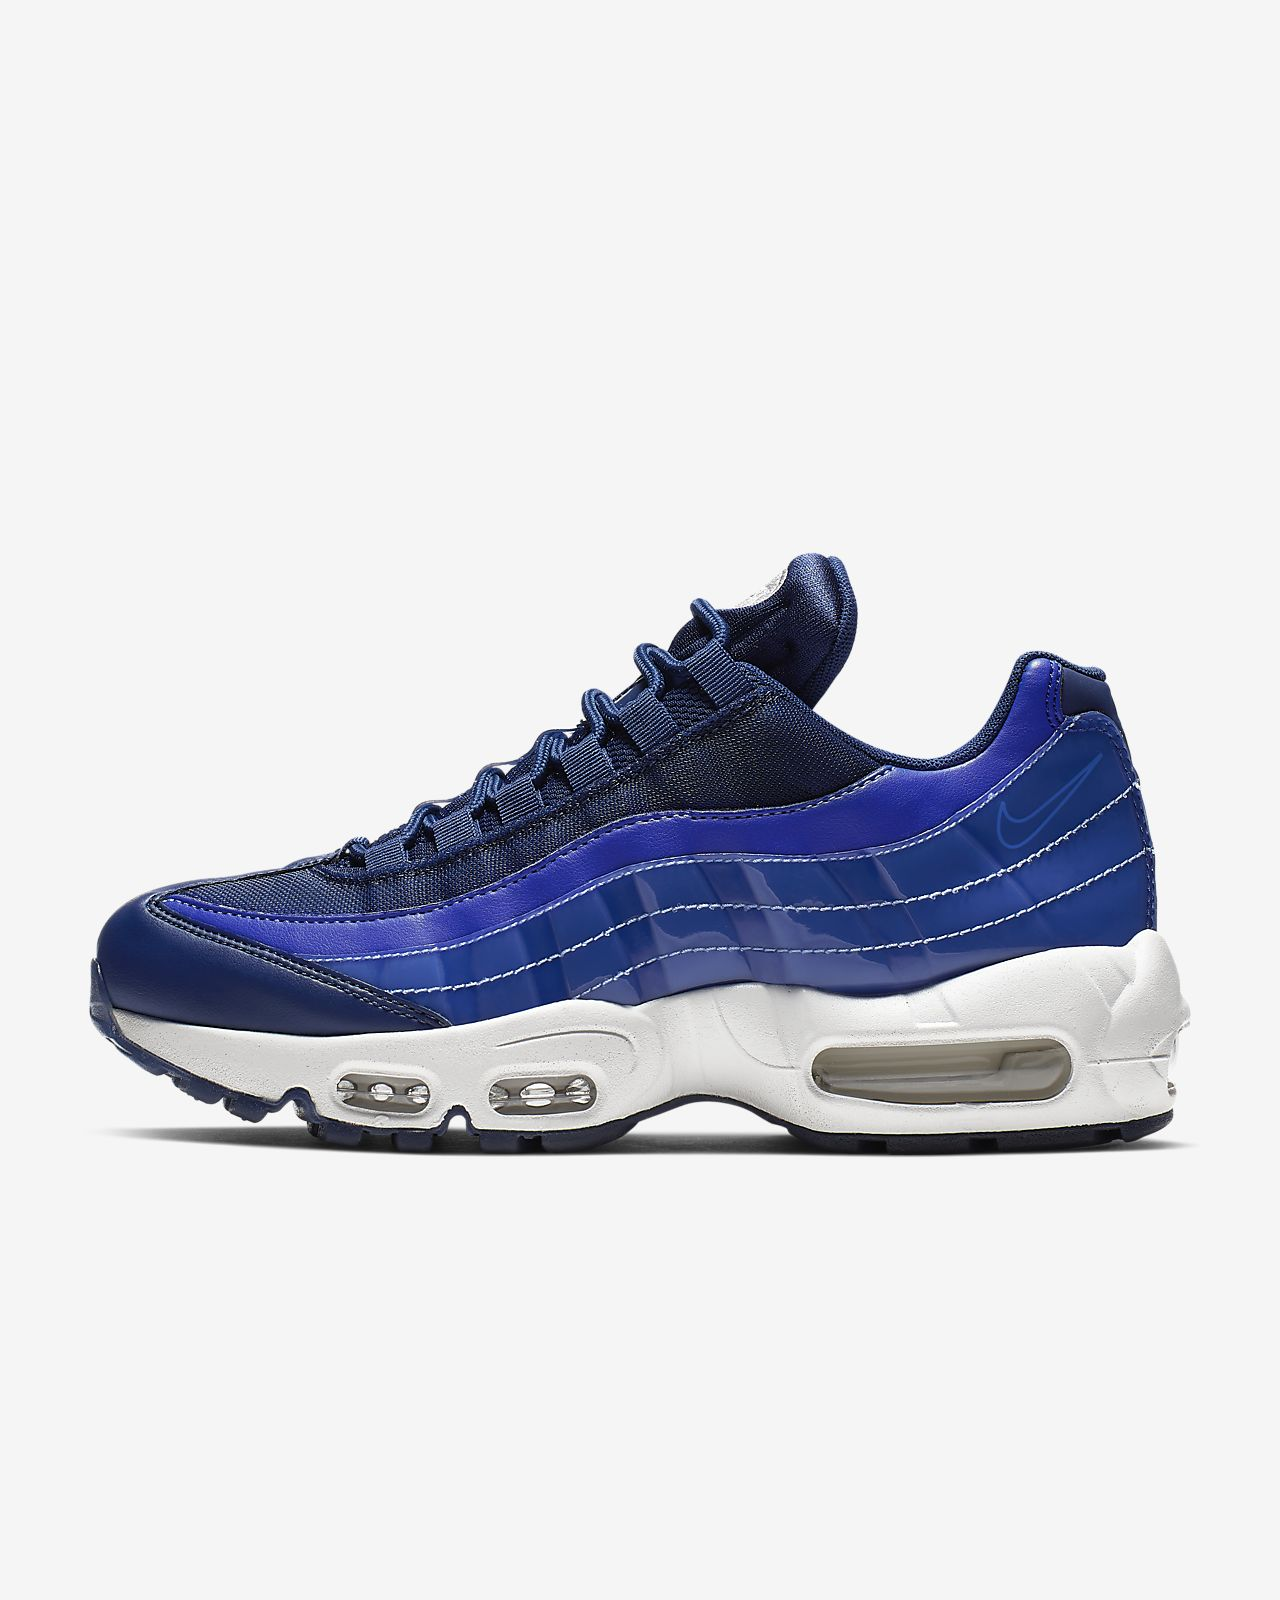 new style efb19 6106c ... Nike Air Max 95 SE Women s Shoe